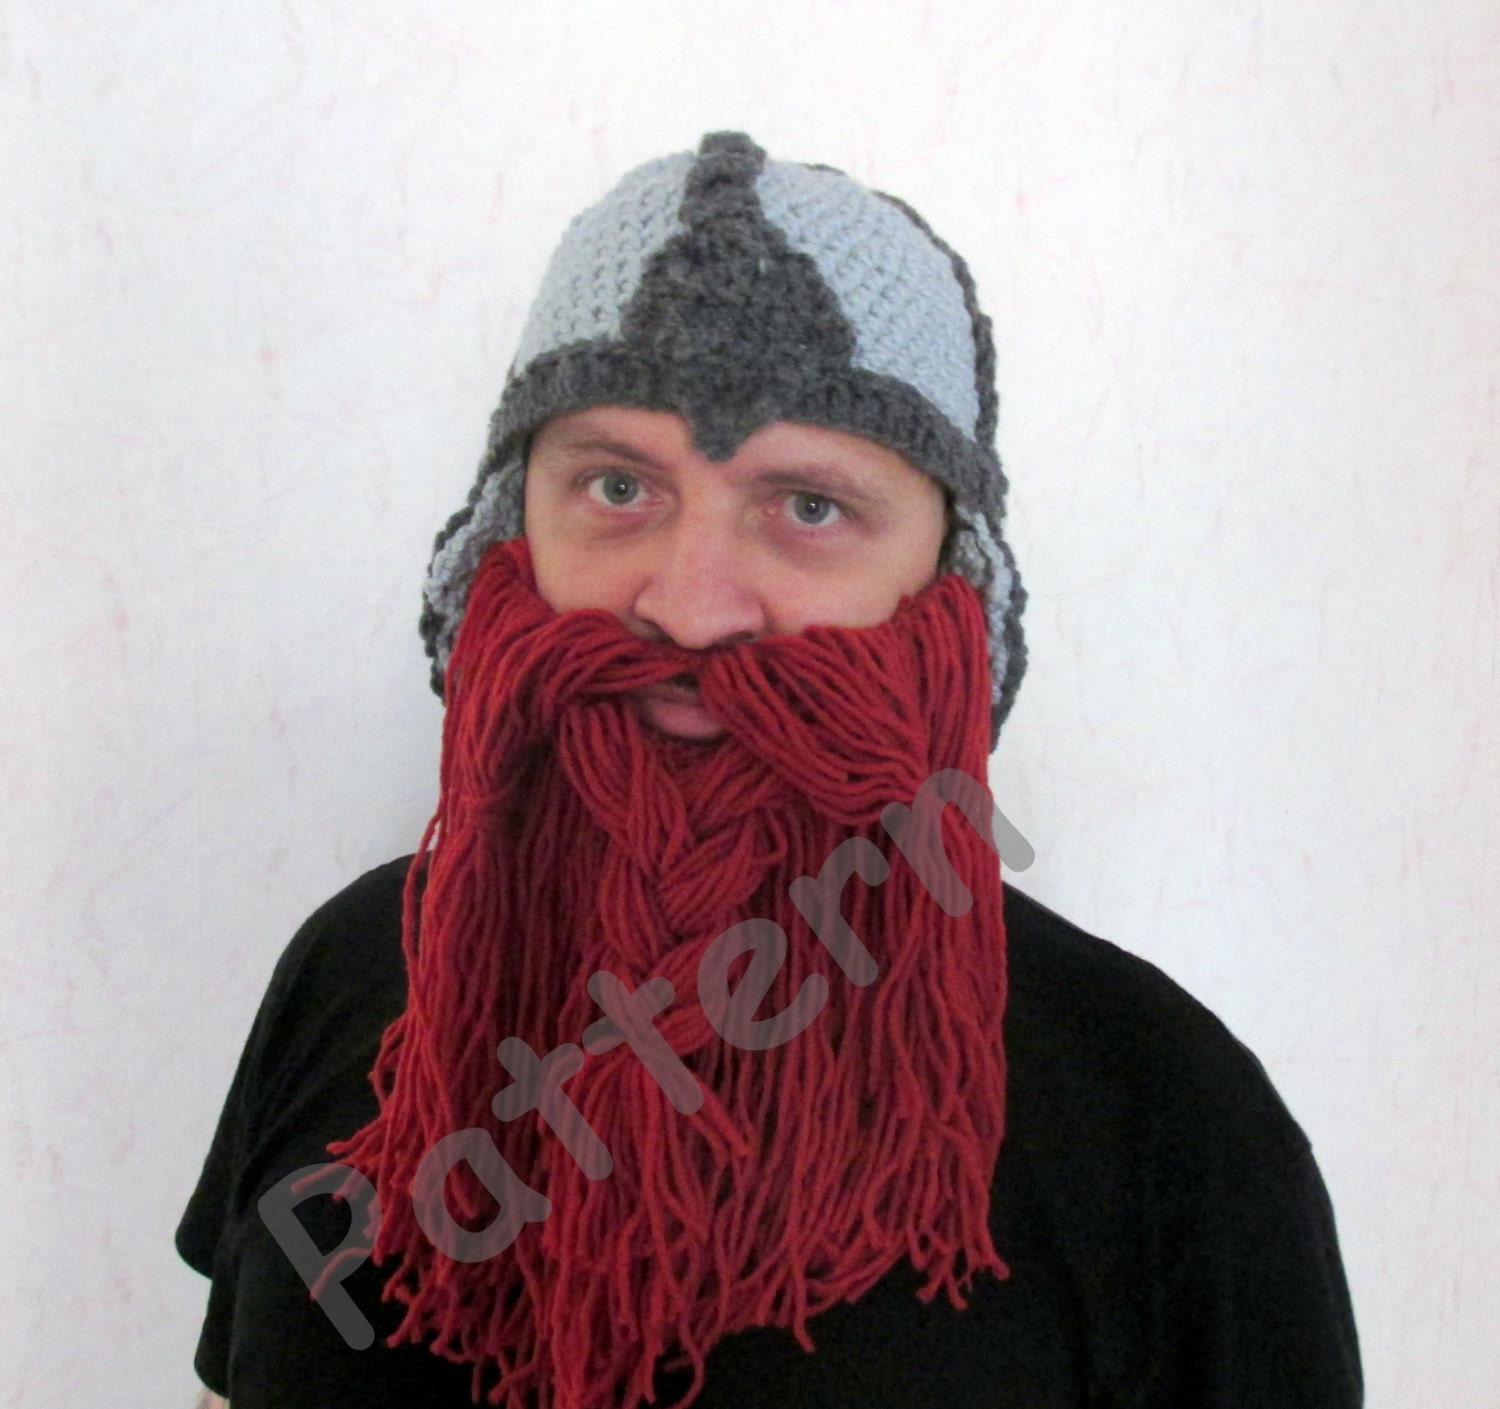 Crochet Viking hat pattern Crochet Beard hat Pattern adult